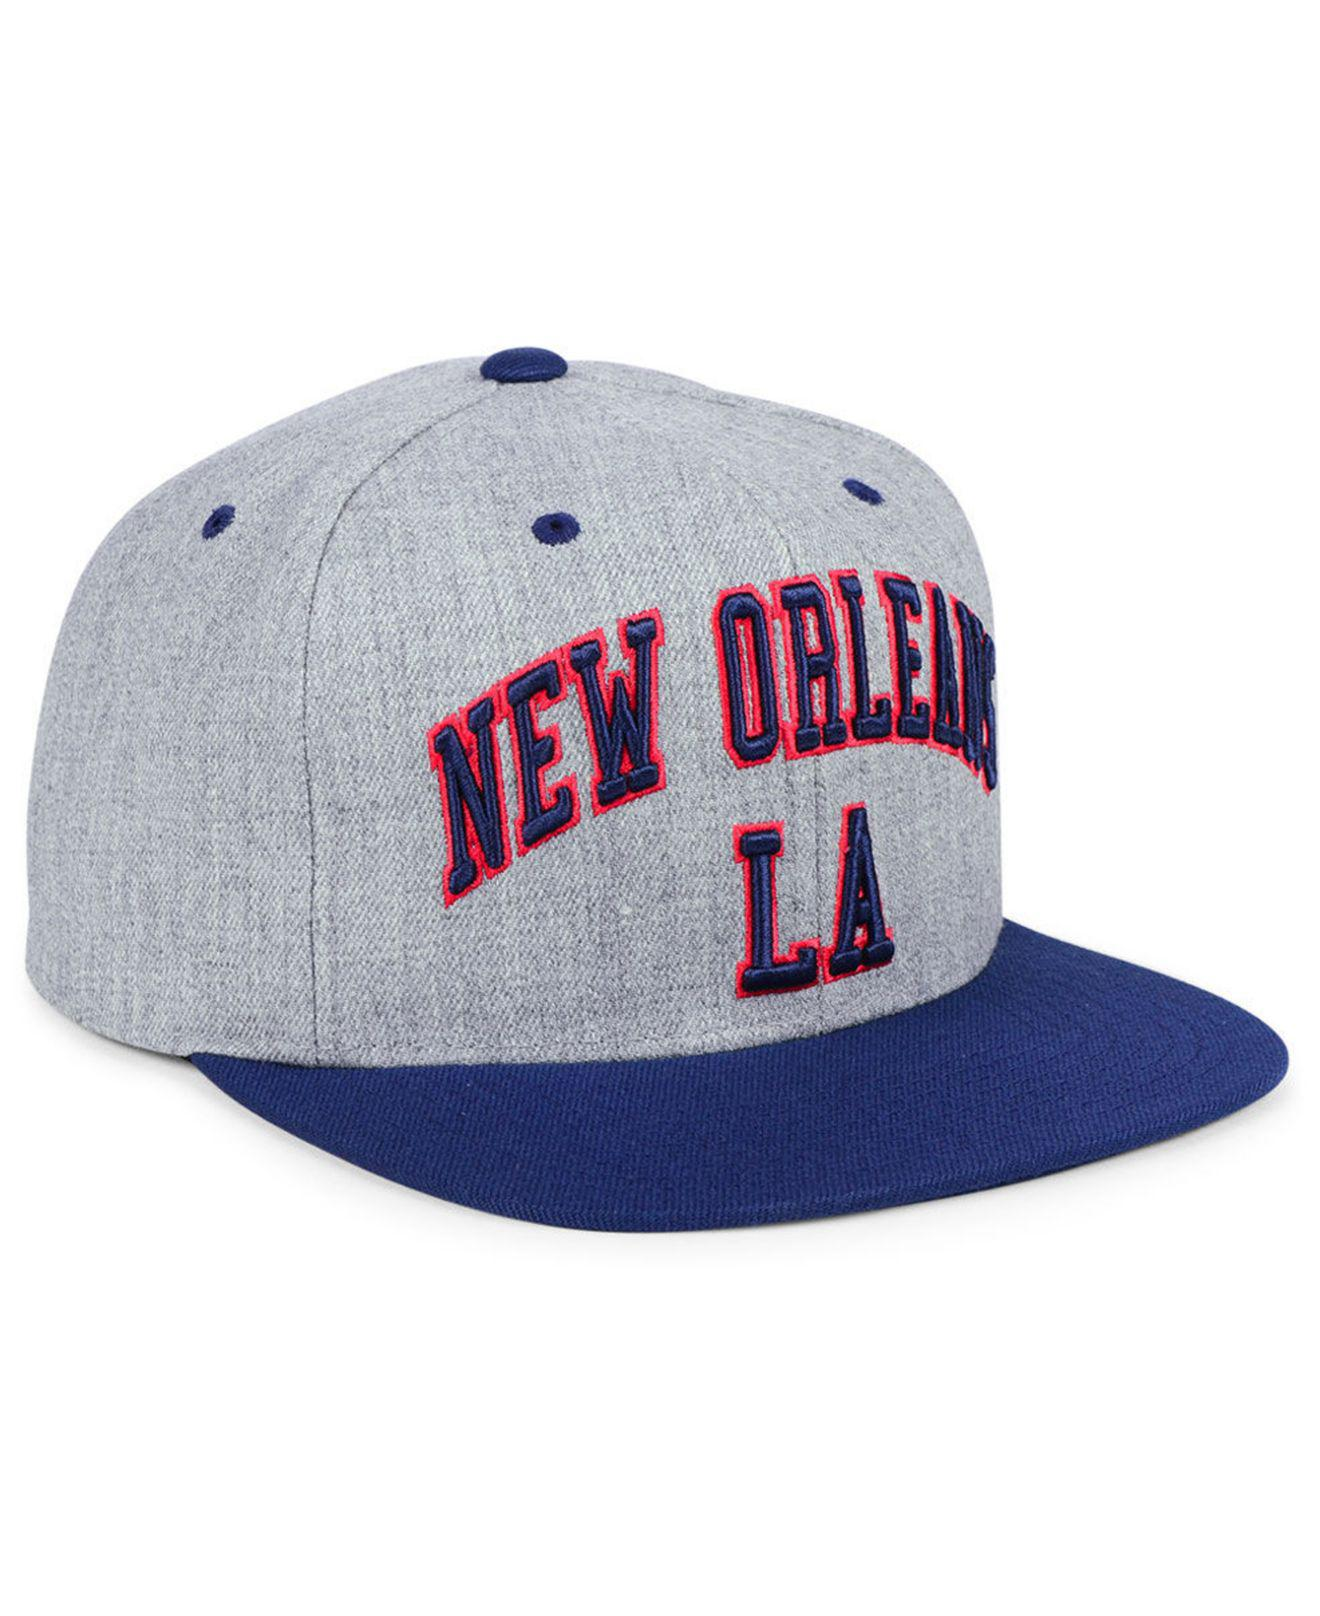 buy popular 6b4c2 84f9a Mitchell   Ness New Orleans Pelicans Side Panel Cropped Snapback Cap ...